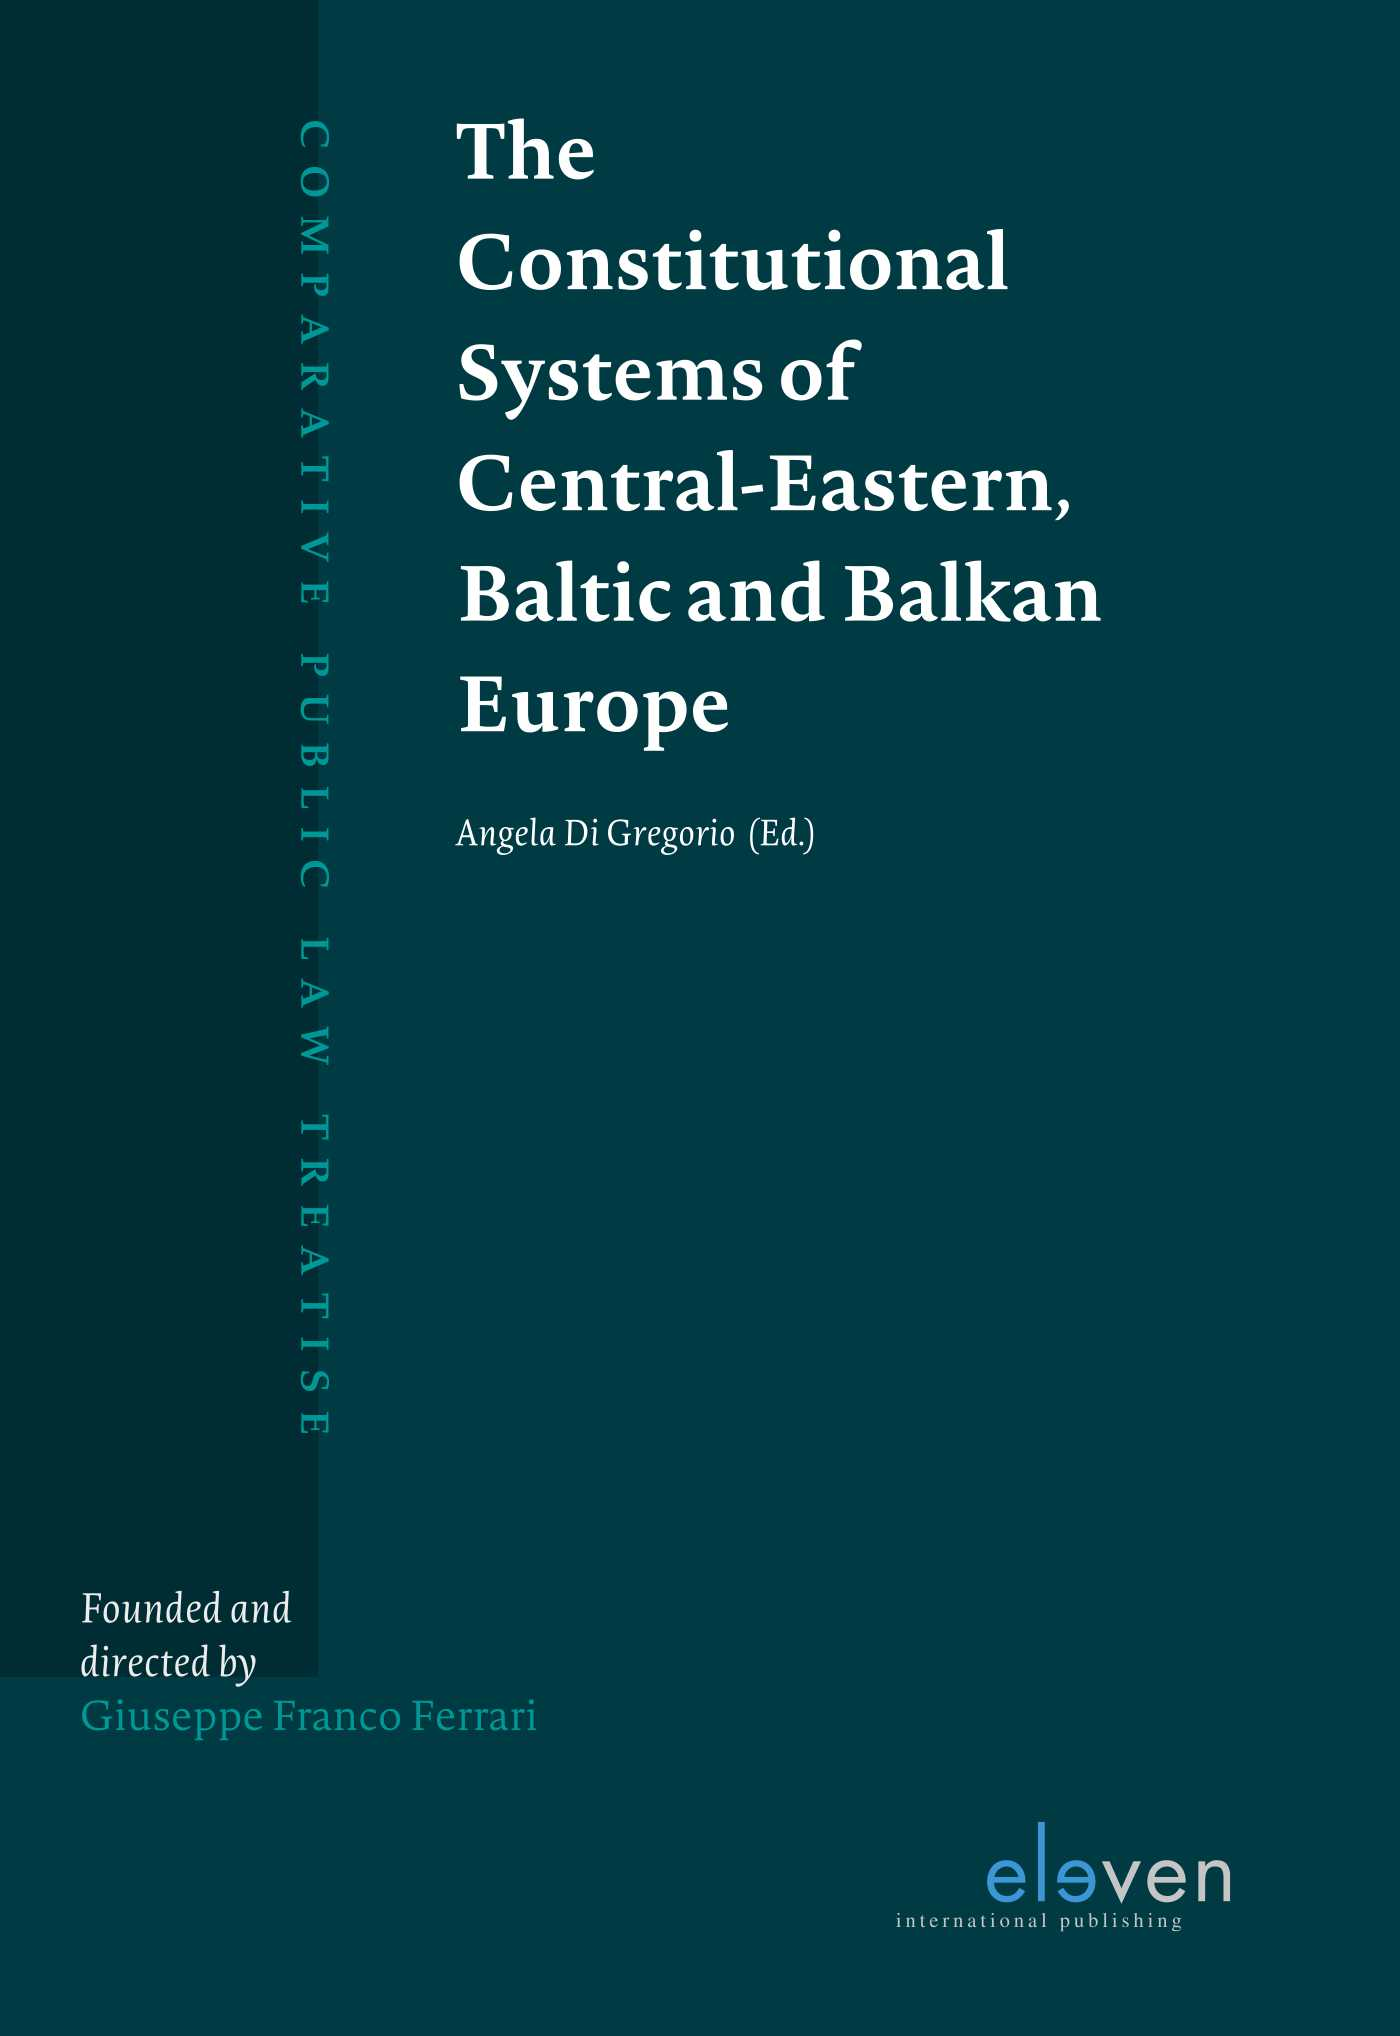 The Constitutional Systems of Central-Eastern, Baltic and Balkan Europe